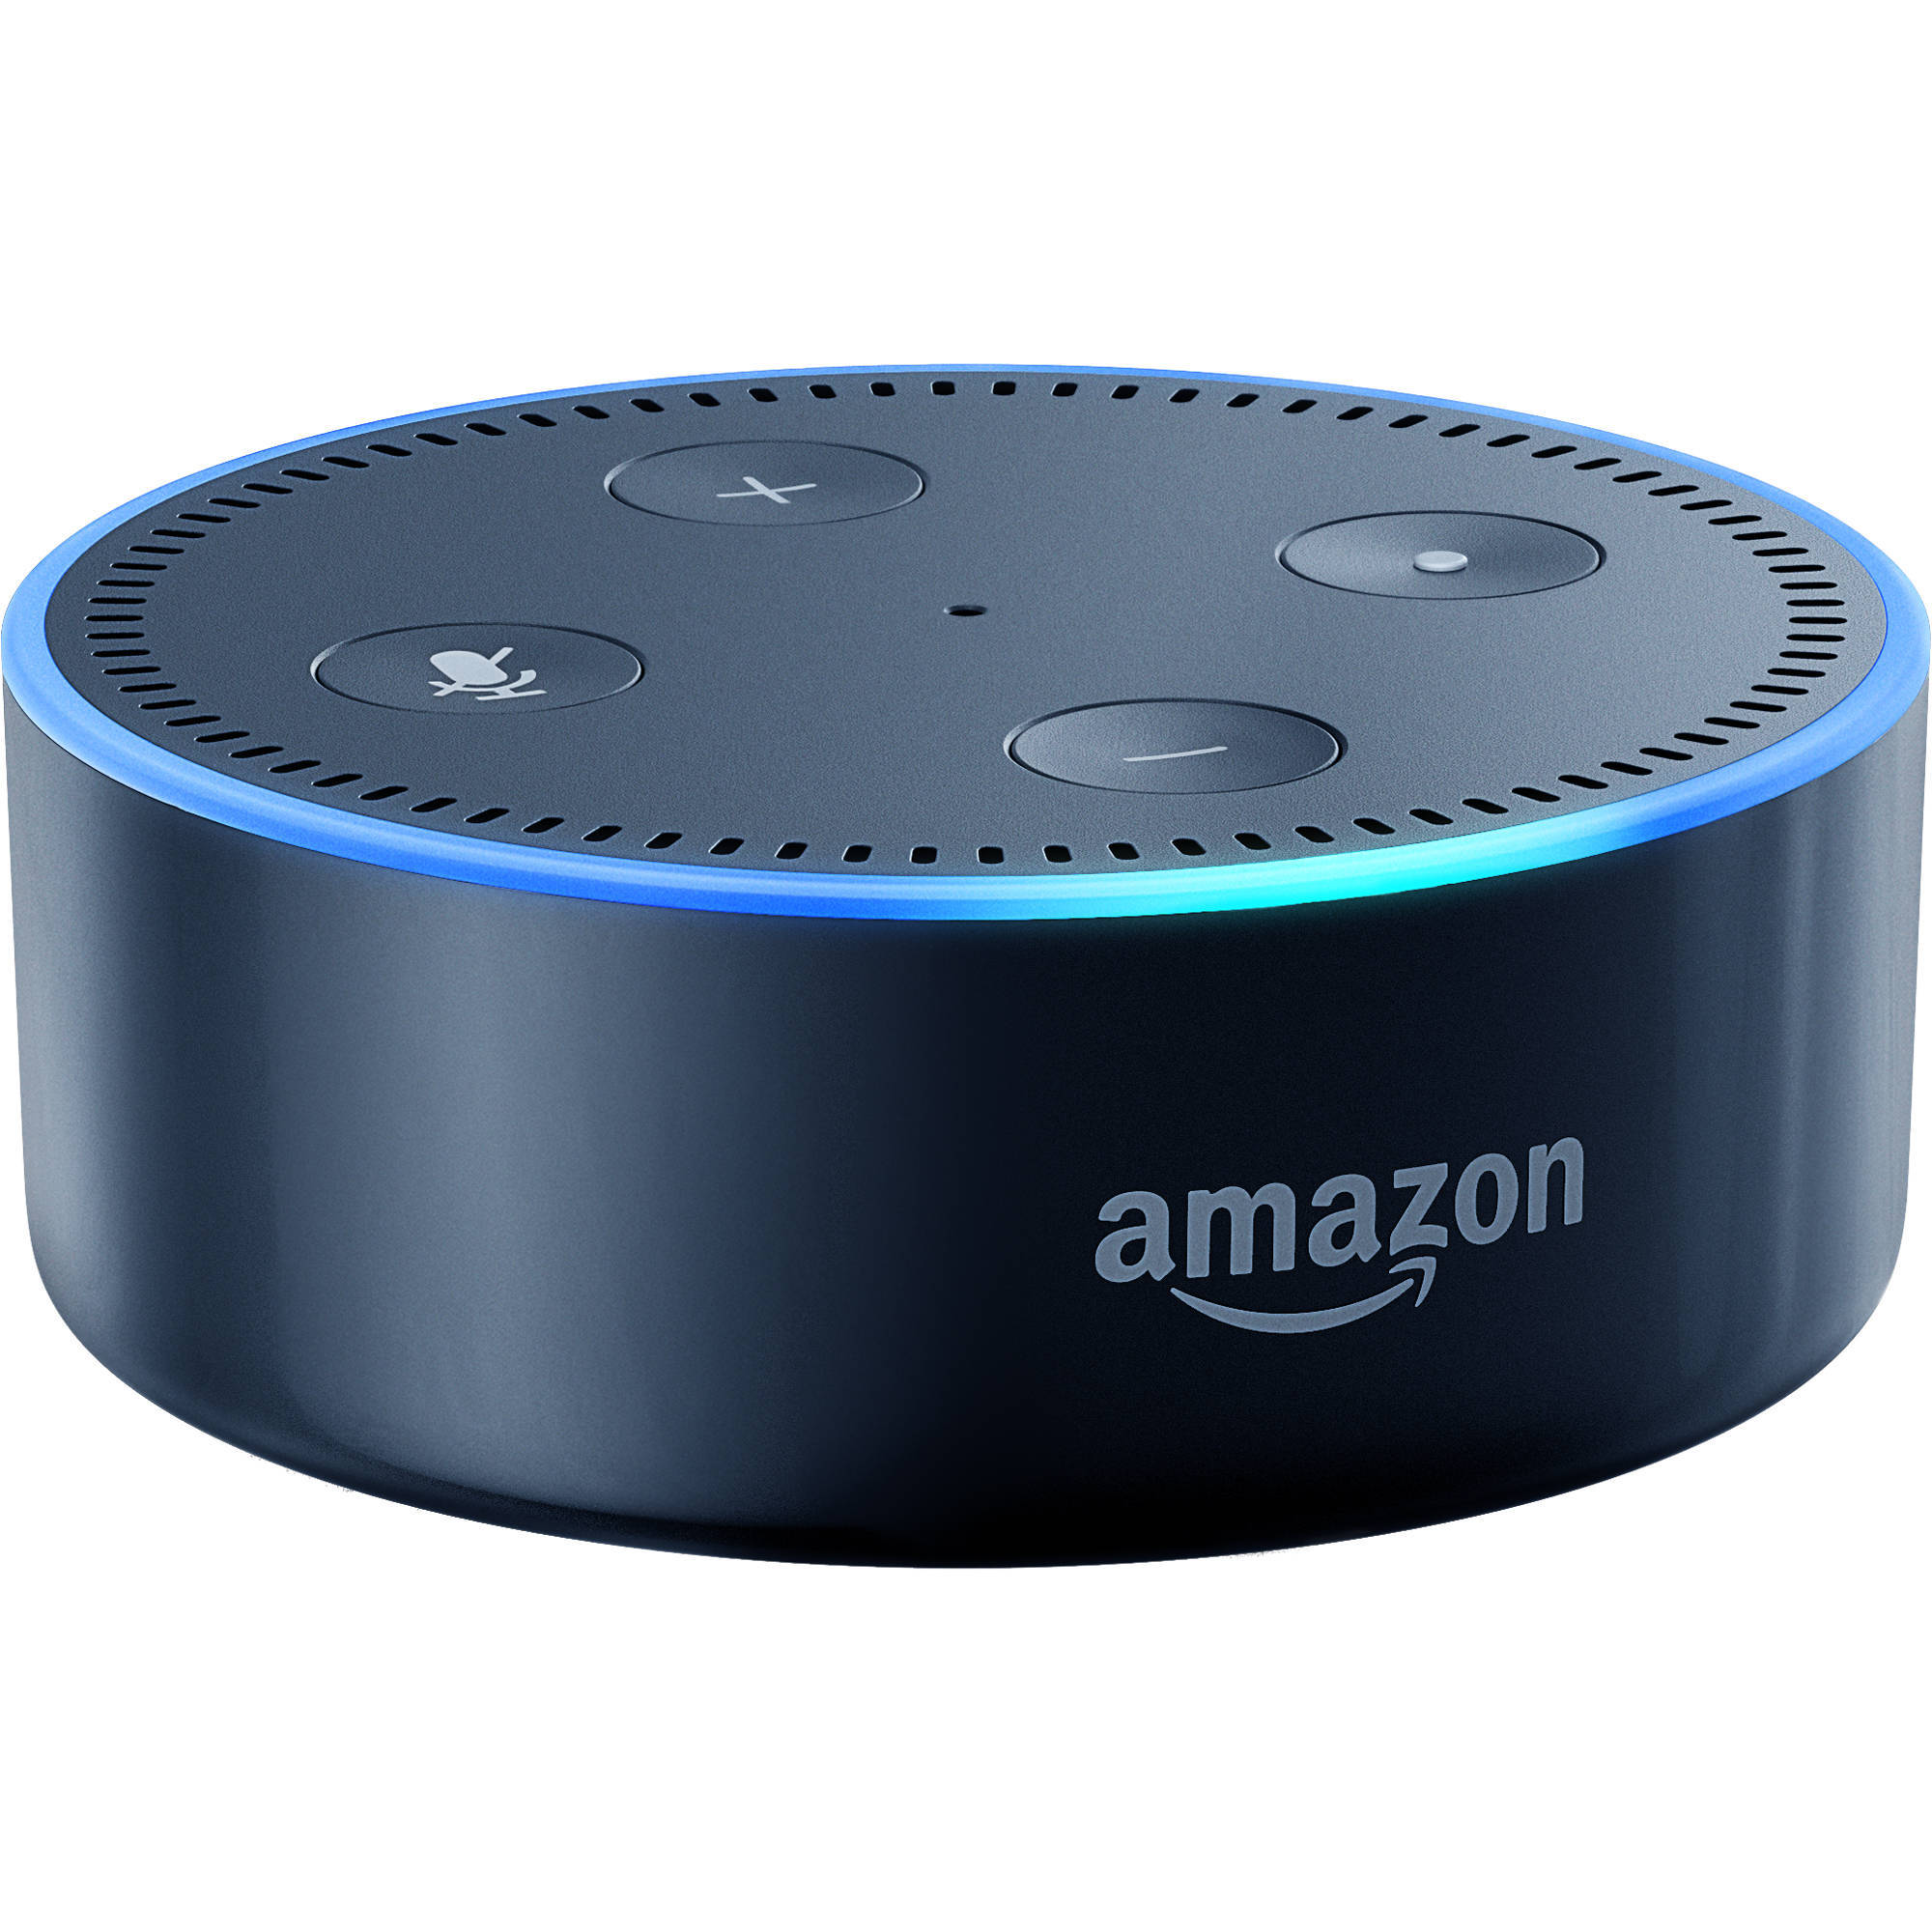 Amazon Echo Dot 2nd Generation Smart Home Assistant in Black